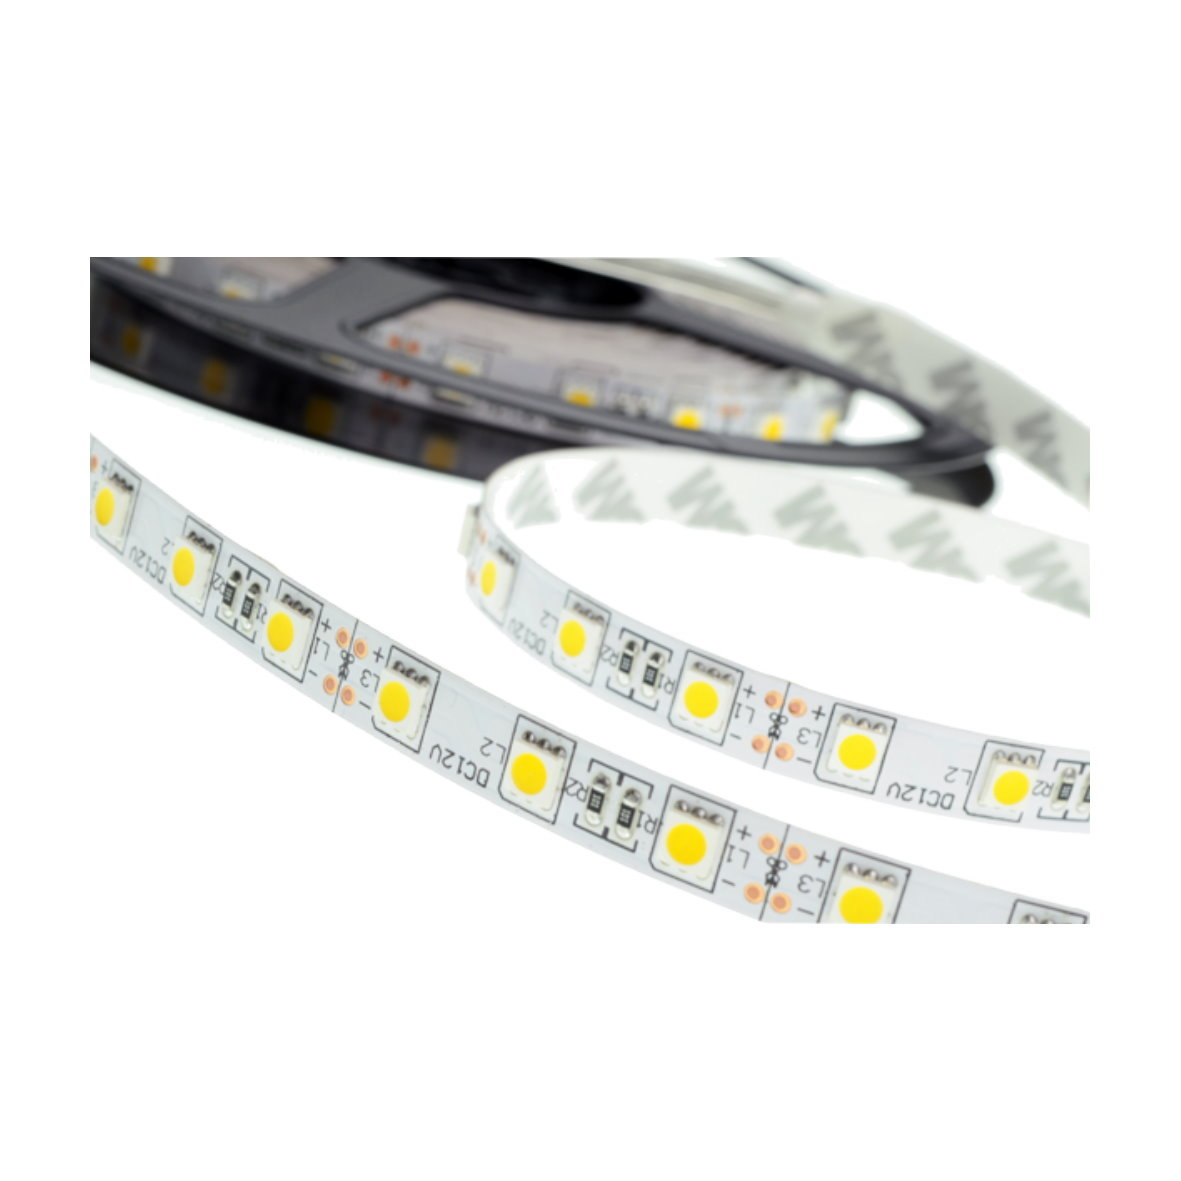 5m 300 smd lichtband licht strip leiste band streifen 3528 5630 led rgb dimmbar. Black Bedroom Furniture Sets. Home Design Ideas